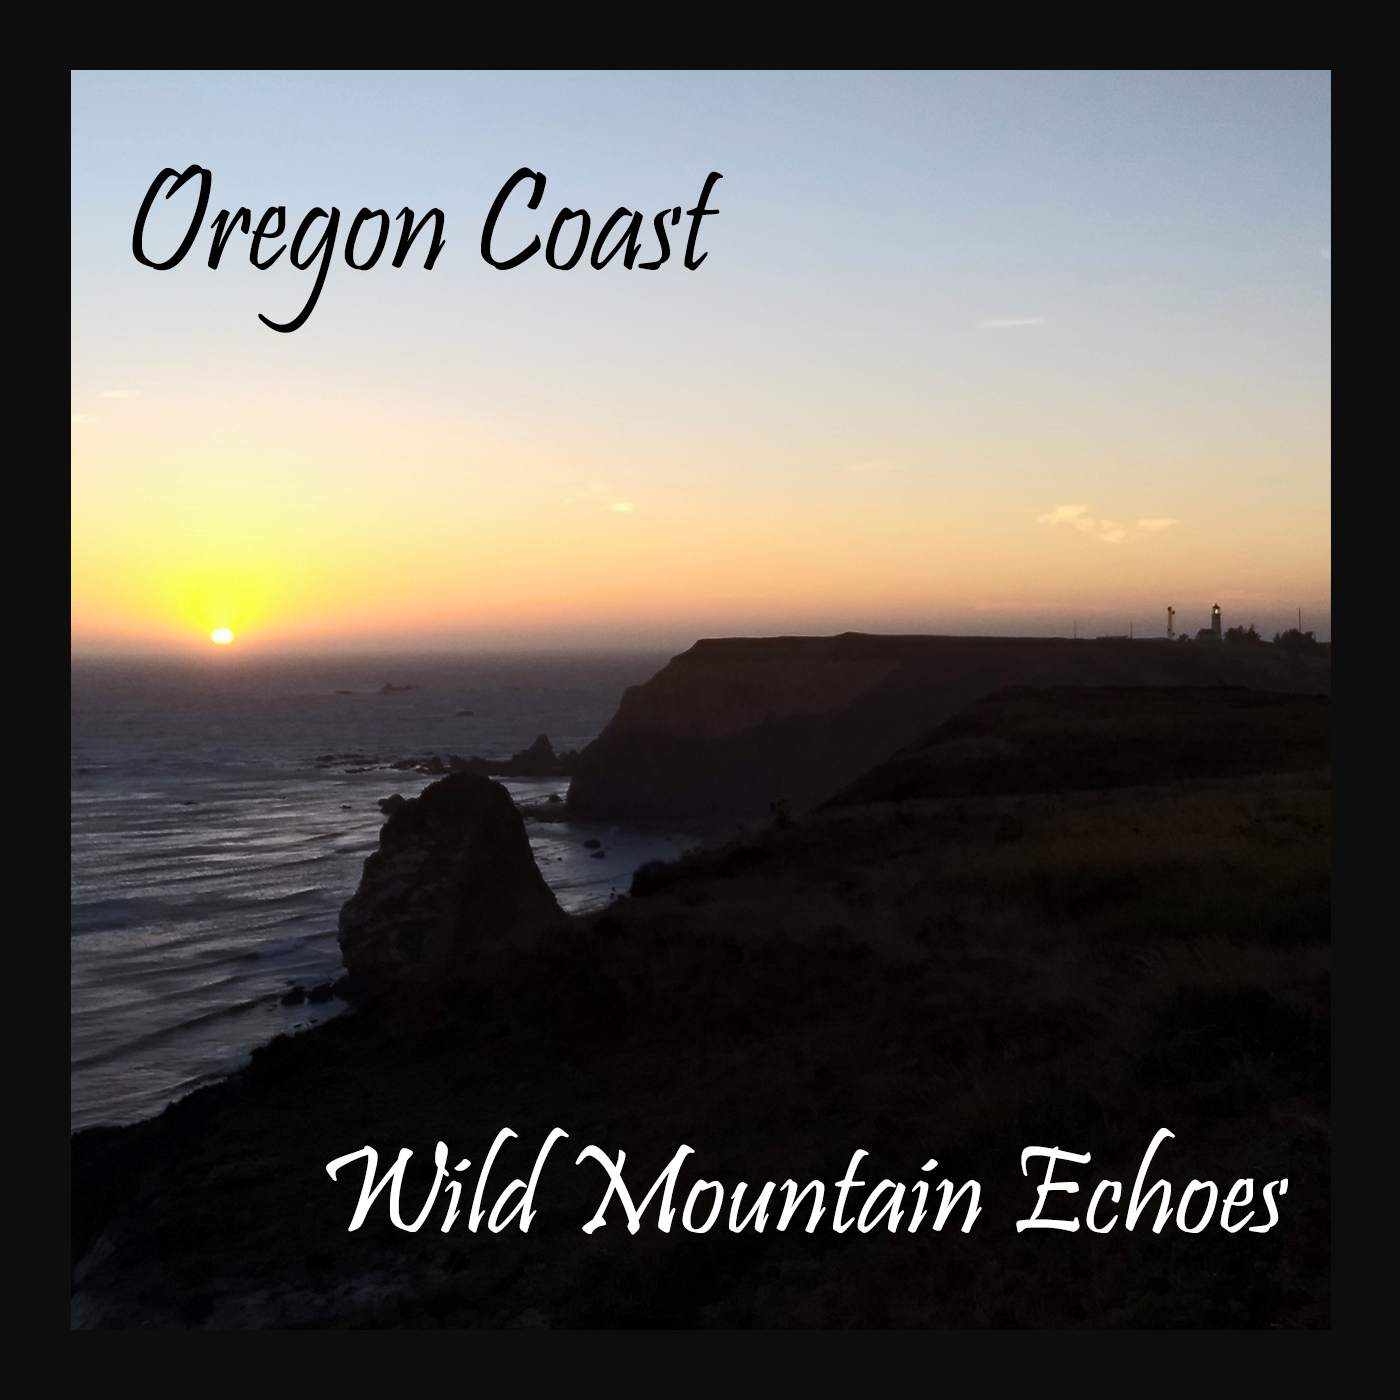 Audio Recording With a Smartphone - Wild Mountain Echoes